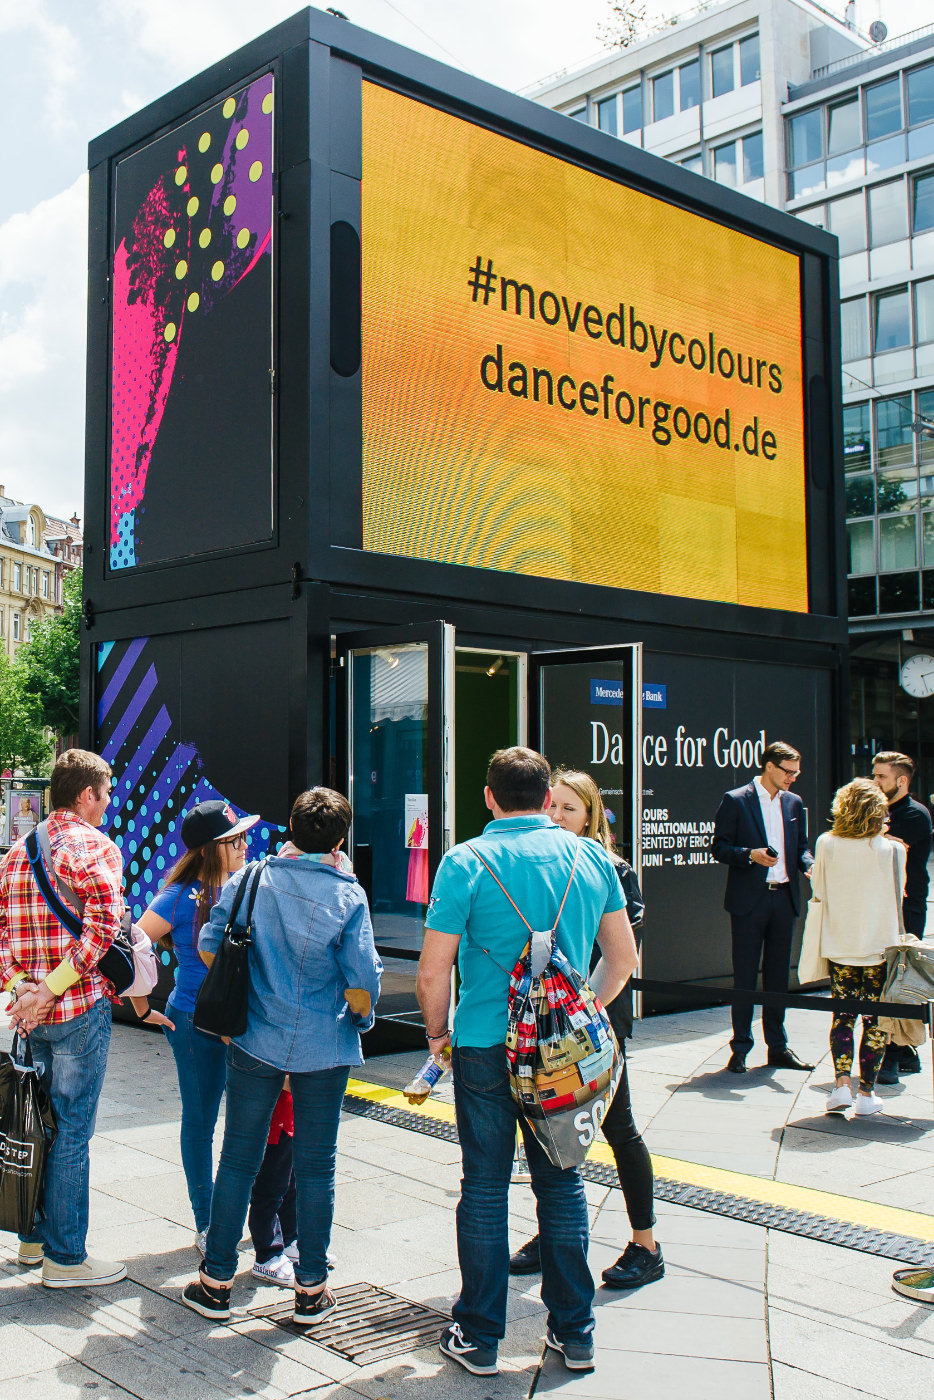 Dance for Good Vidibox in der Stuttgarter Innenstadt